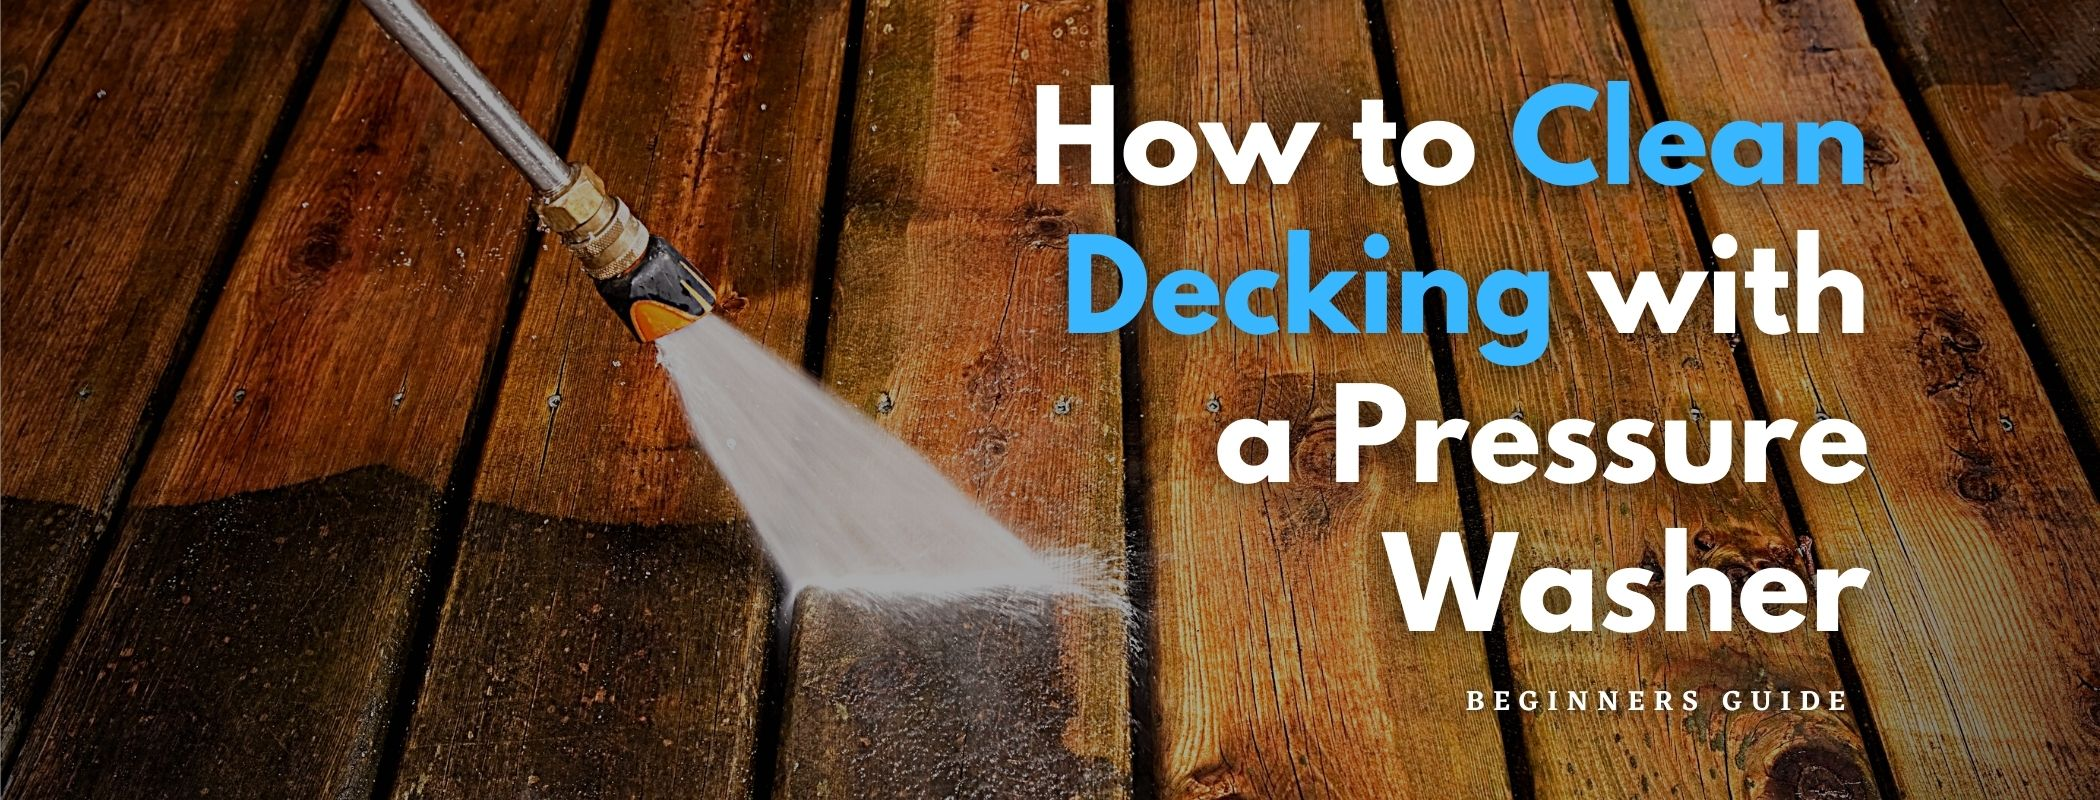 How to Clean Decking with a Pressure Washer